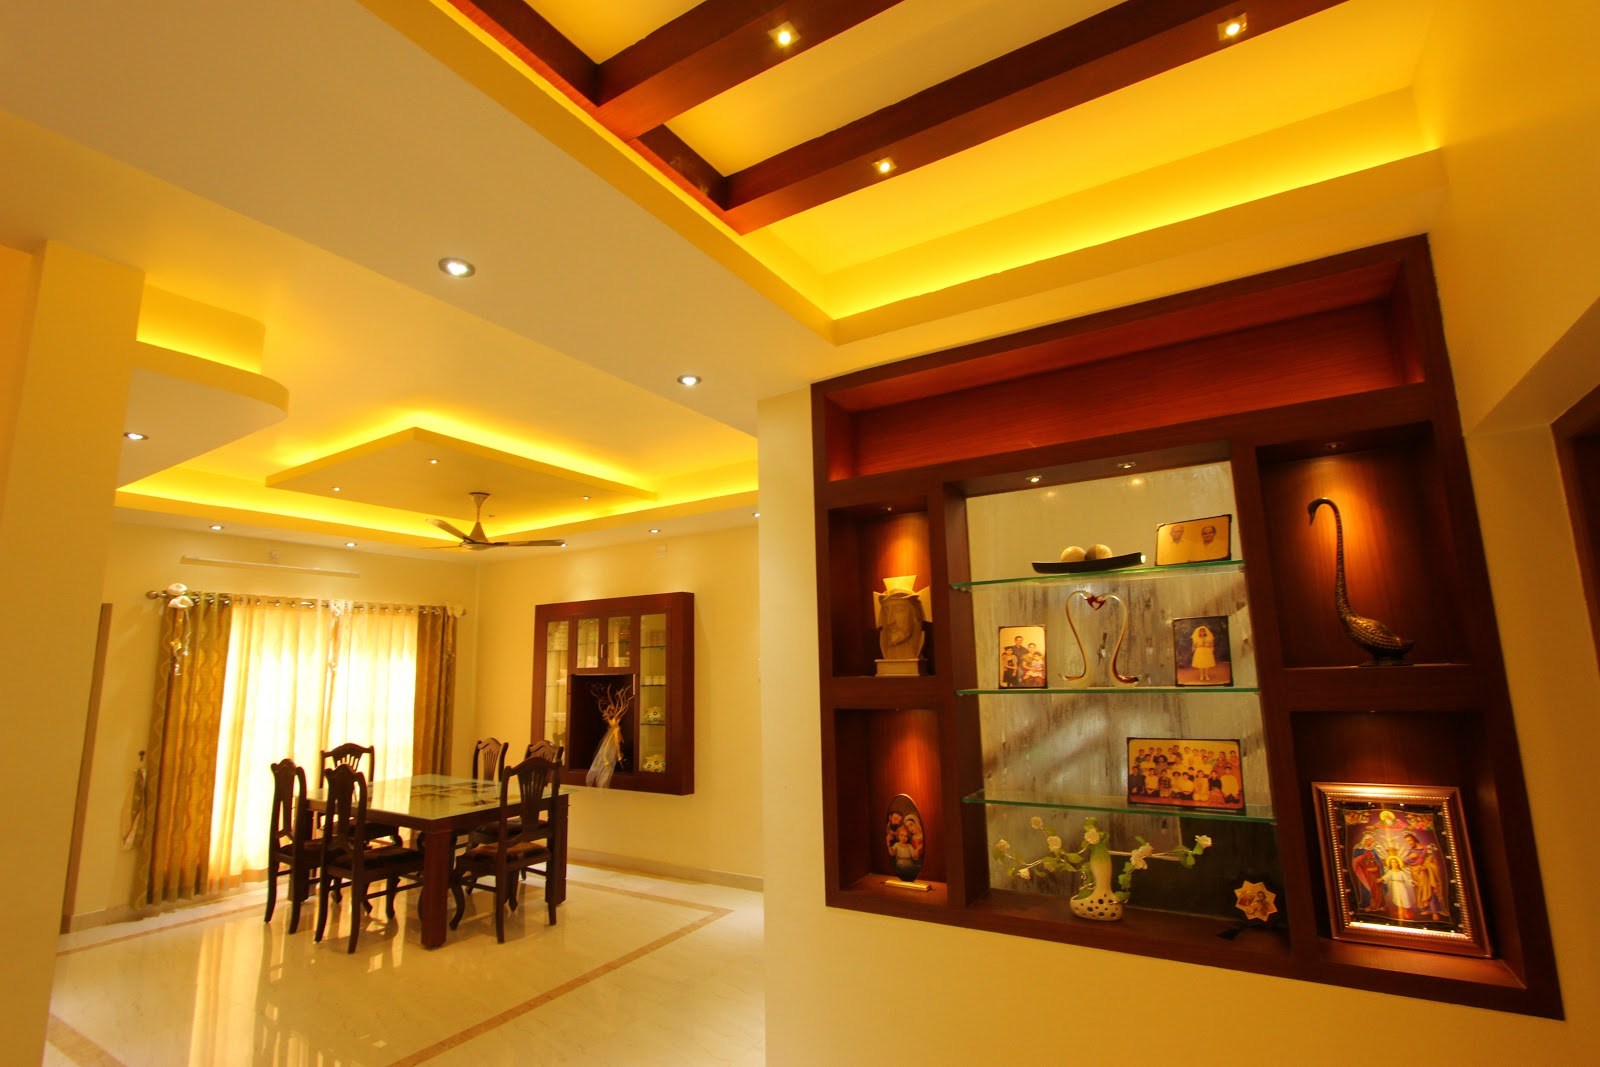 Shilpakala interiors award winning home interior design for Household design company